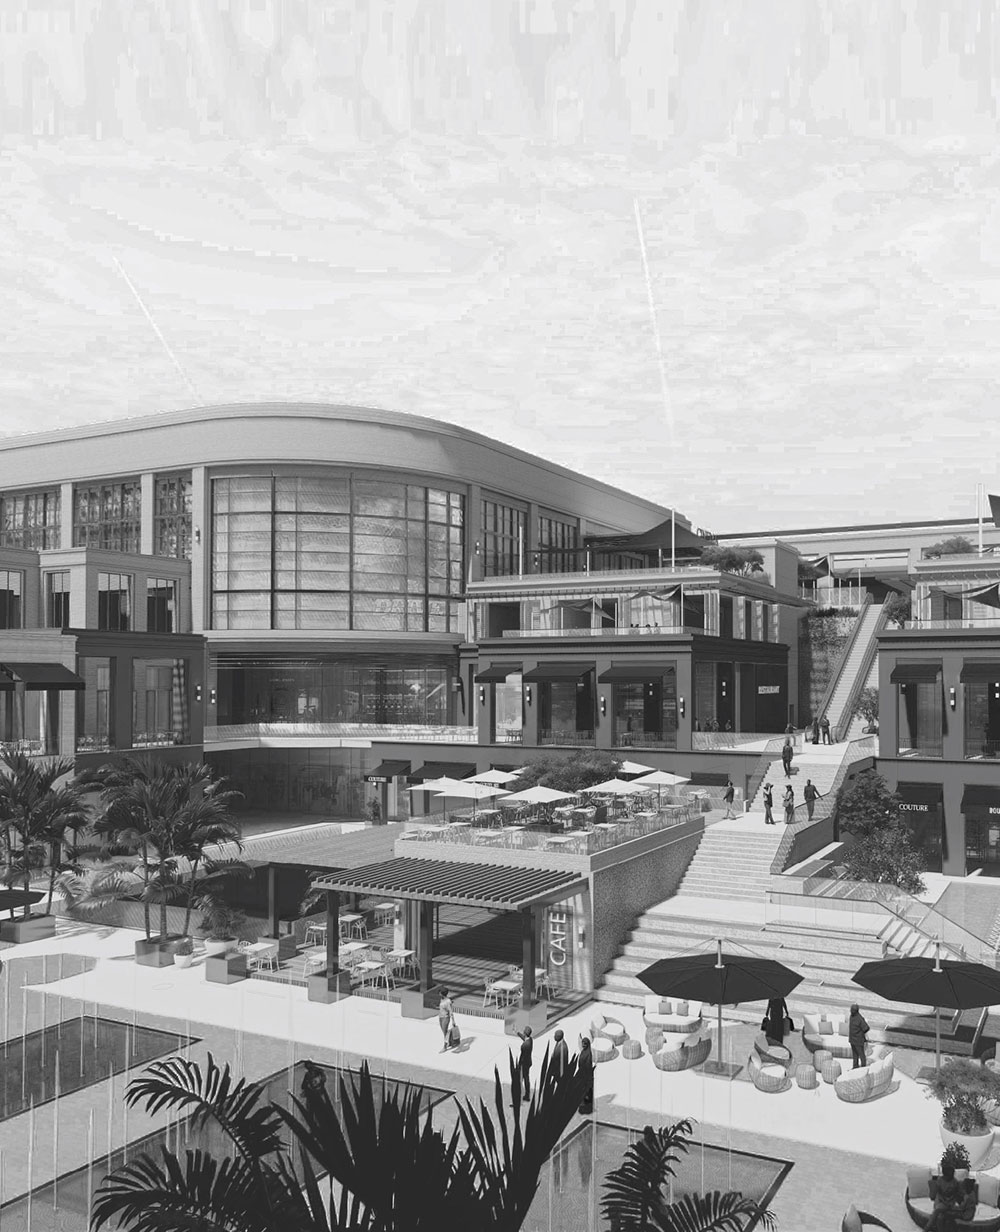 The first open space village ambiance lifestyle and entertainment destination in Alexandria